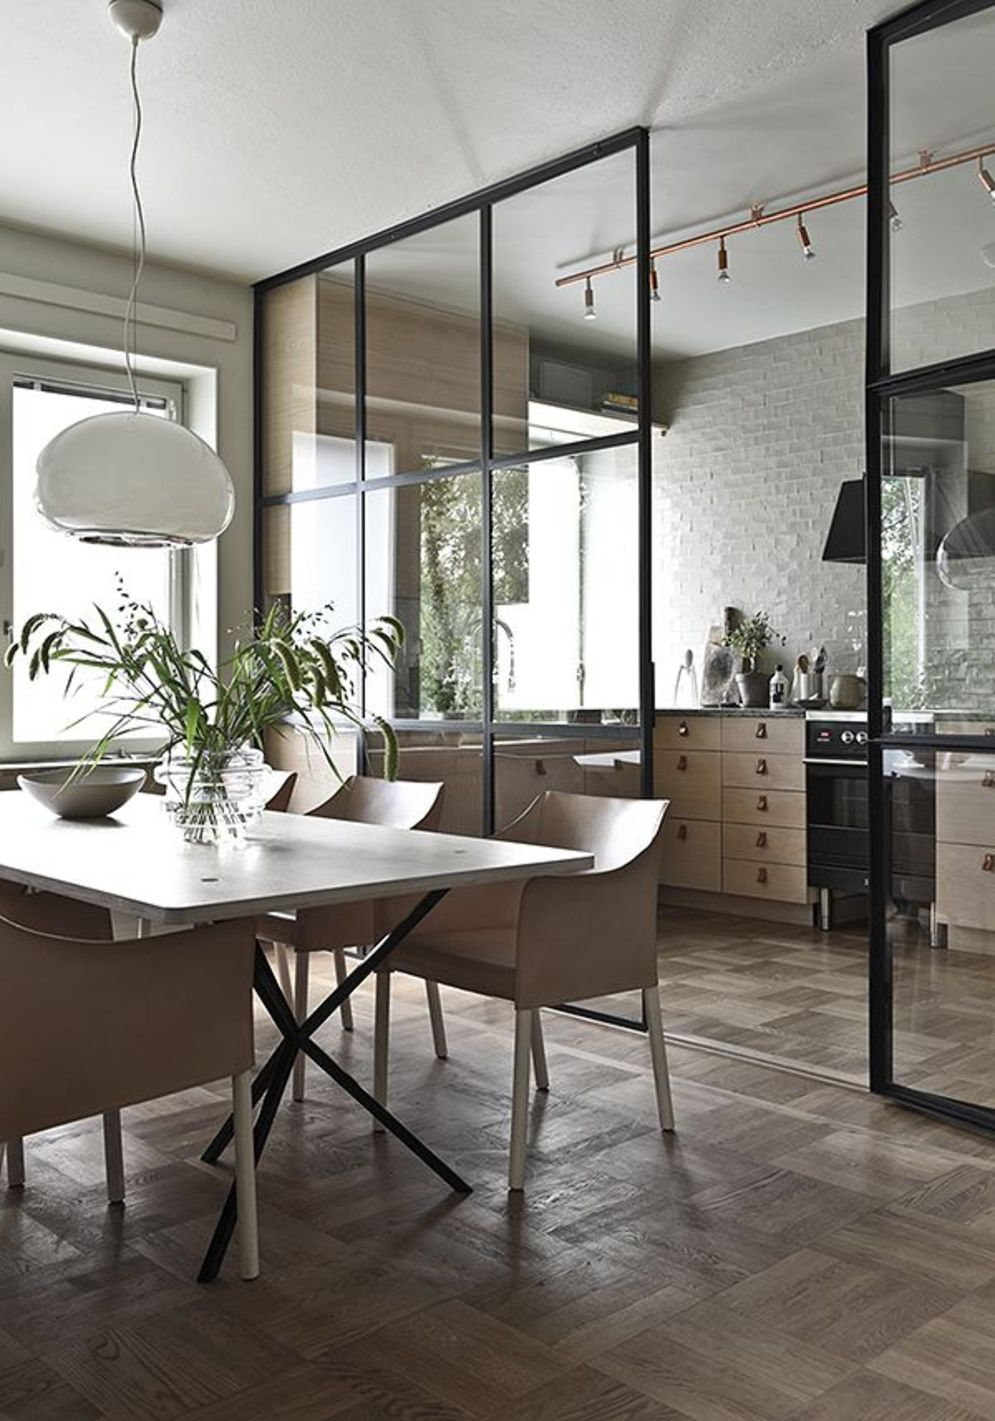 Limitless interior schemes with clever glass partition enlarging wide interior vibes Image 30